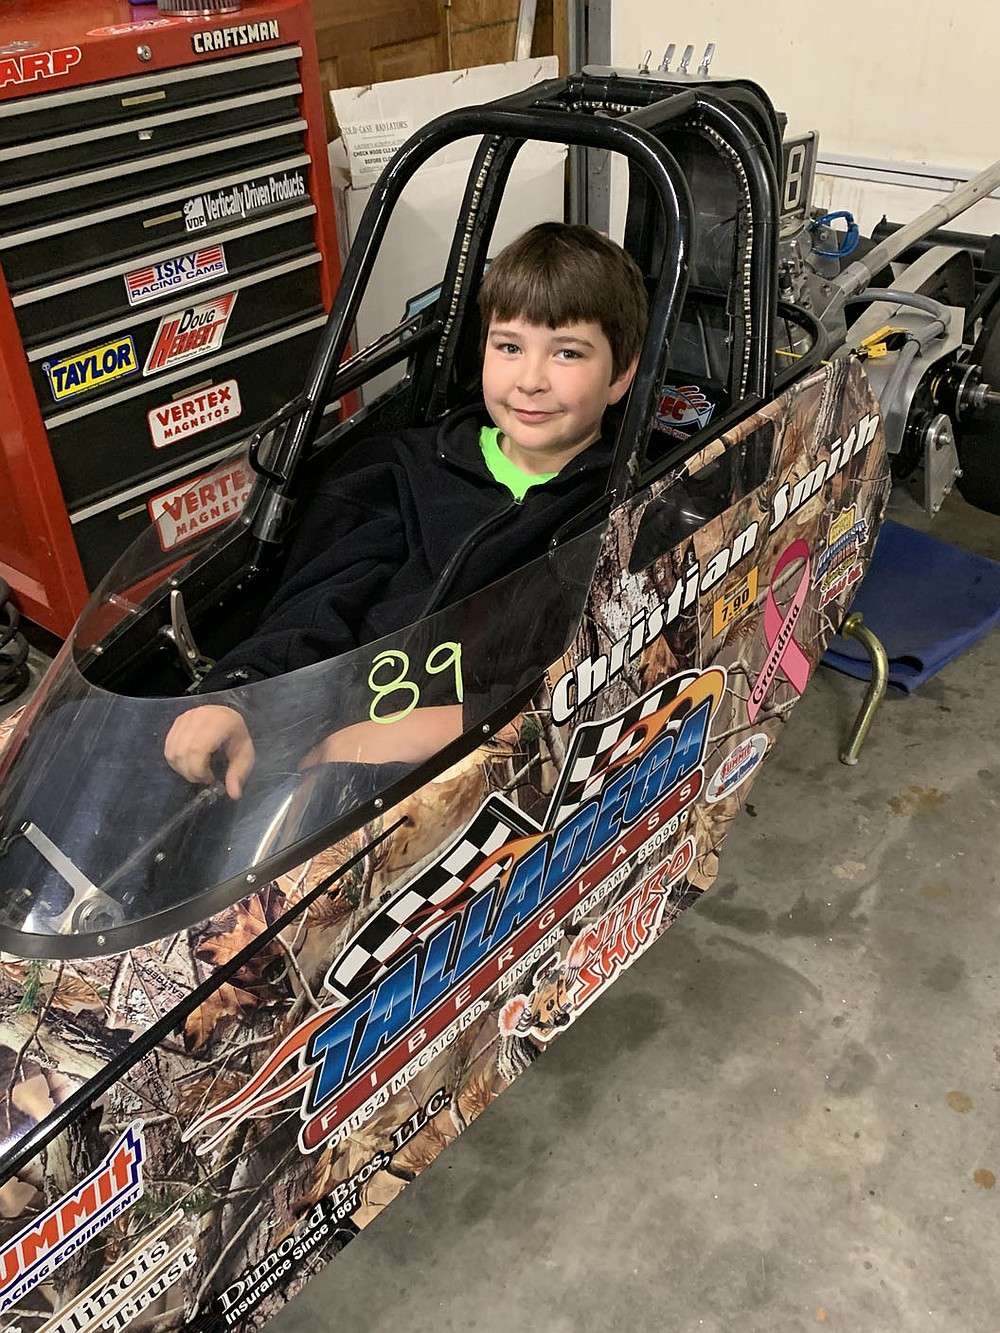 SALLY CARROLL/SPECIAL TO MCDONALD COUNTY PRESS Tristan Roughton, 9, enjoys junior drag racing. He and his cousin and his aunt compete regularly when the weather allows them to do so.